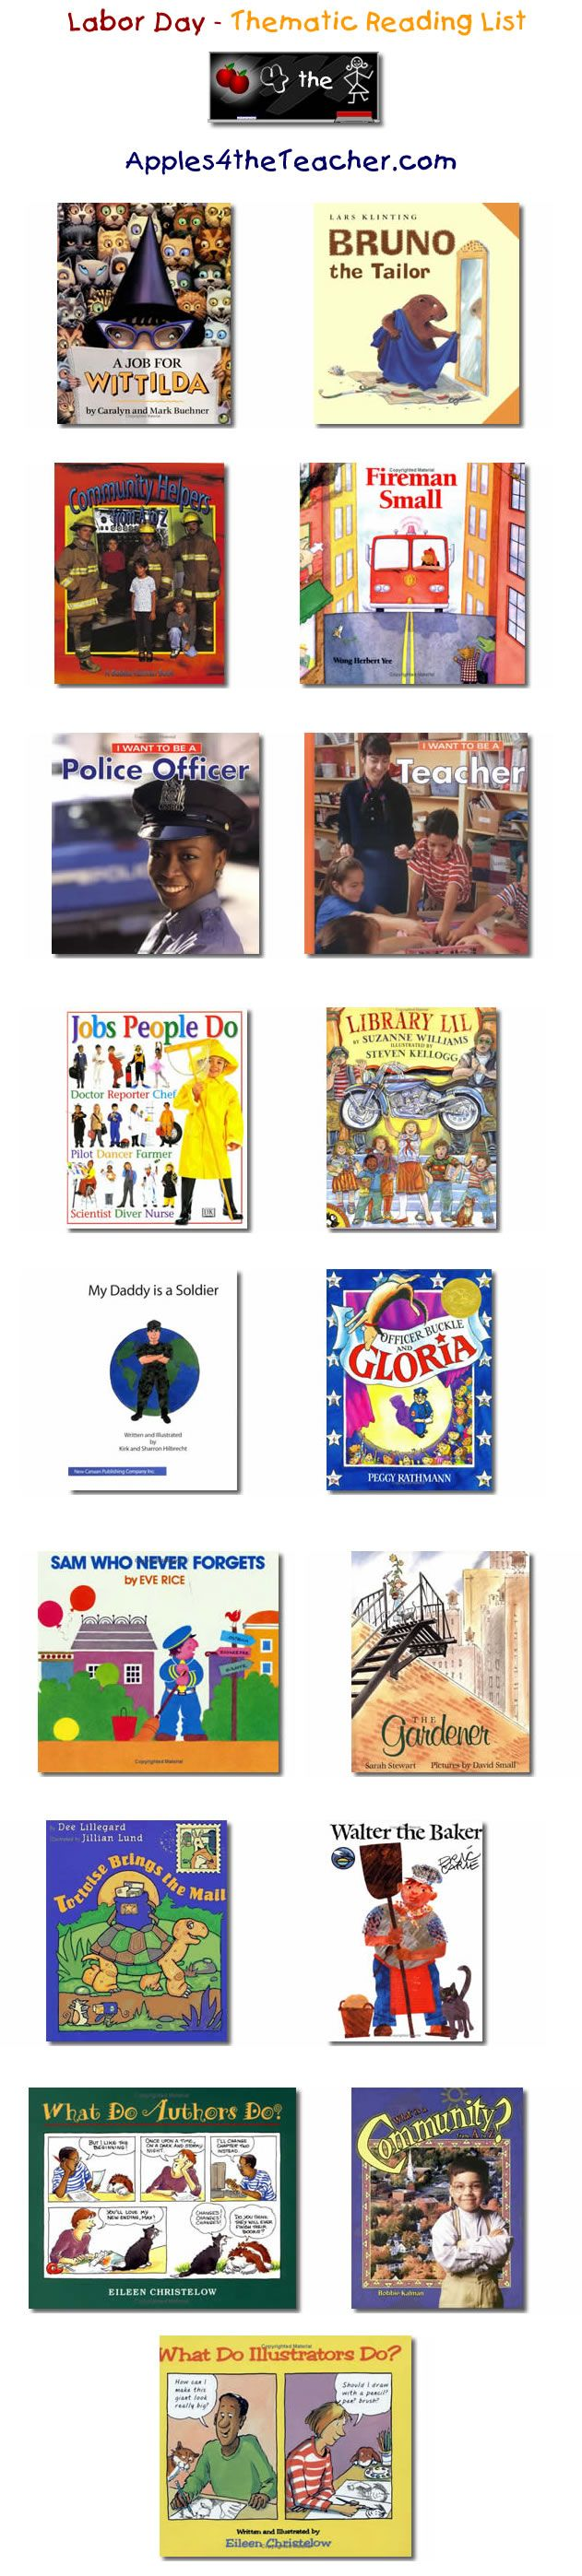 Suggested thematic reading list for Labor Day - Labor Day books for kids.